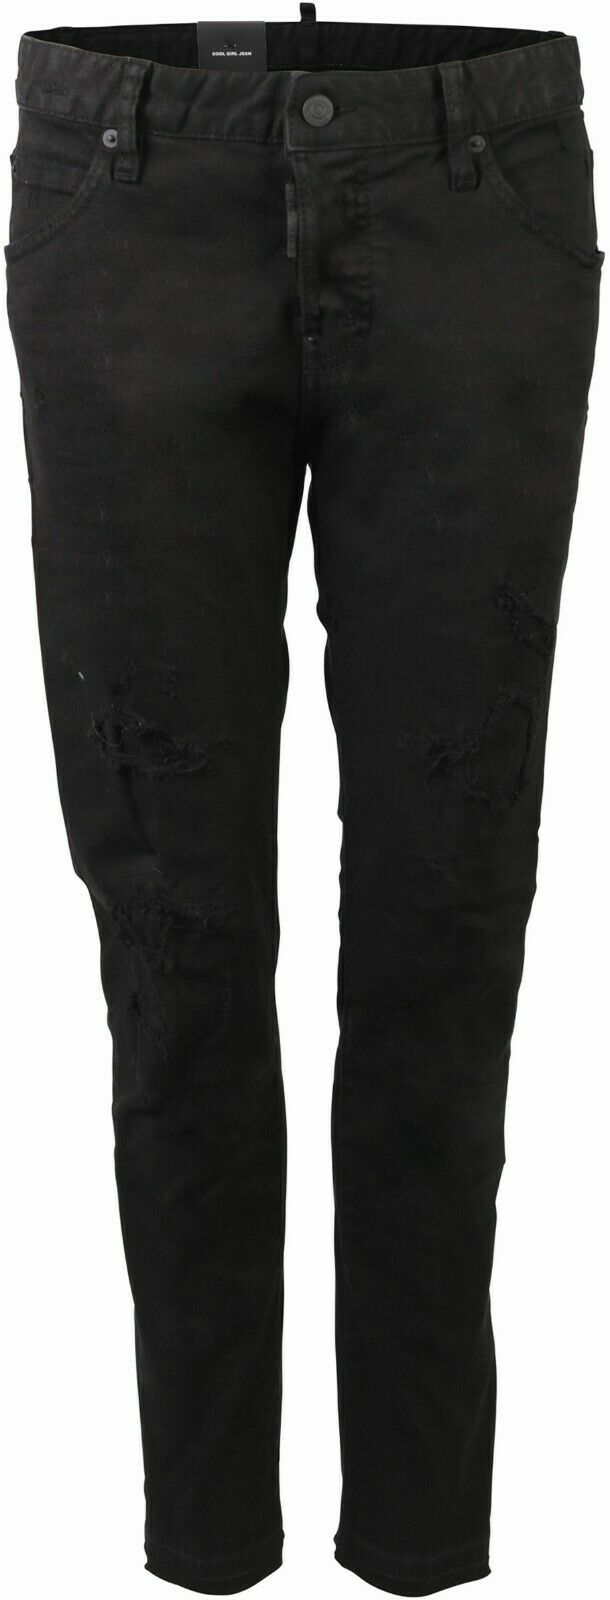 Women's Dsquared D2 Cool Girl Jeans black  DENIM GR IT 42 D 36 71619